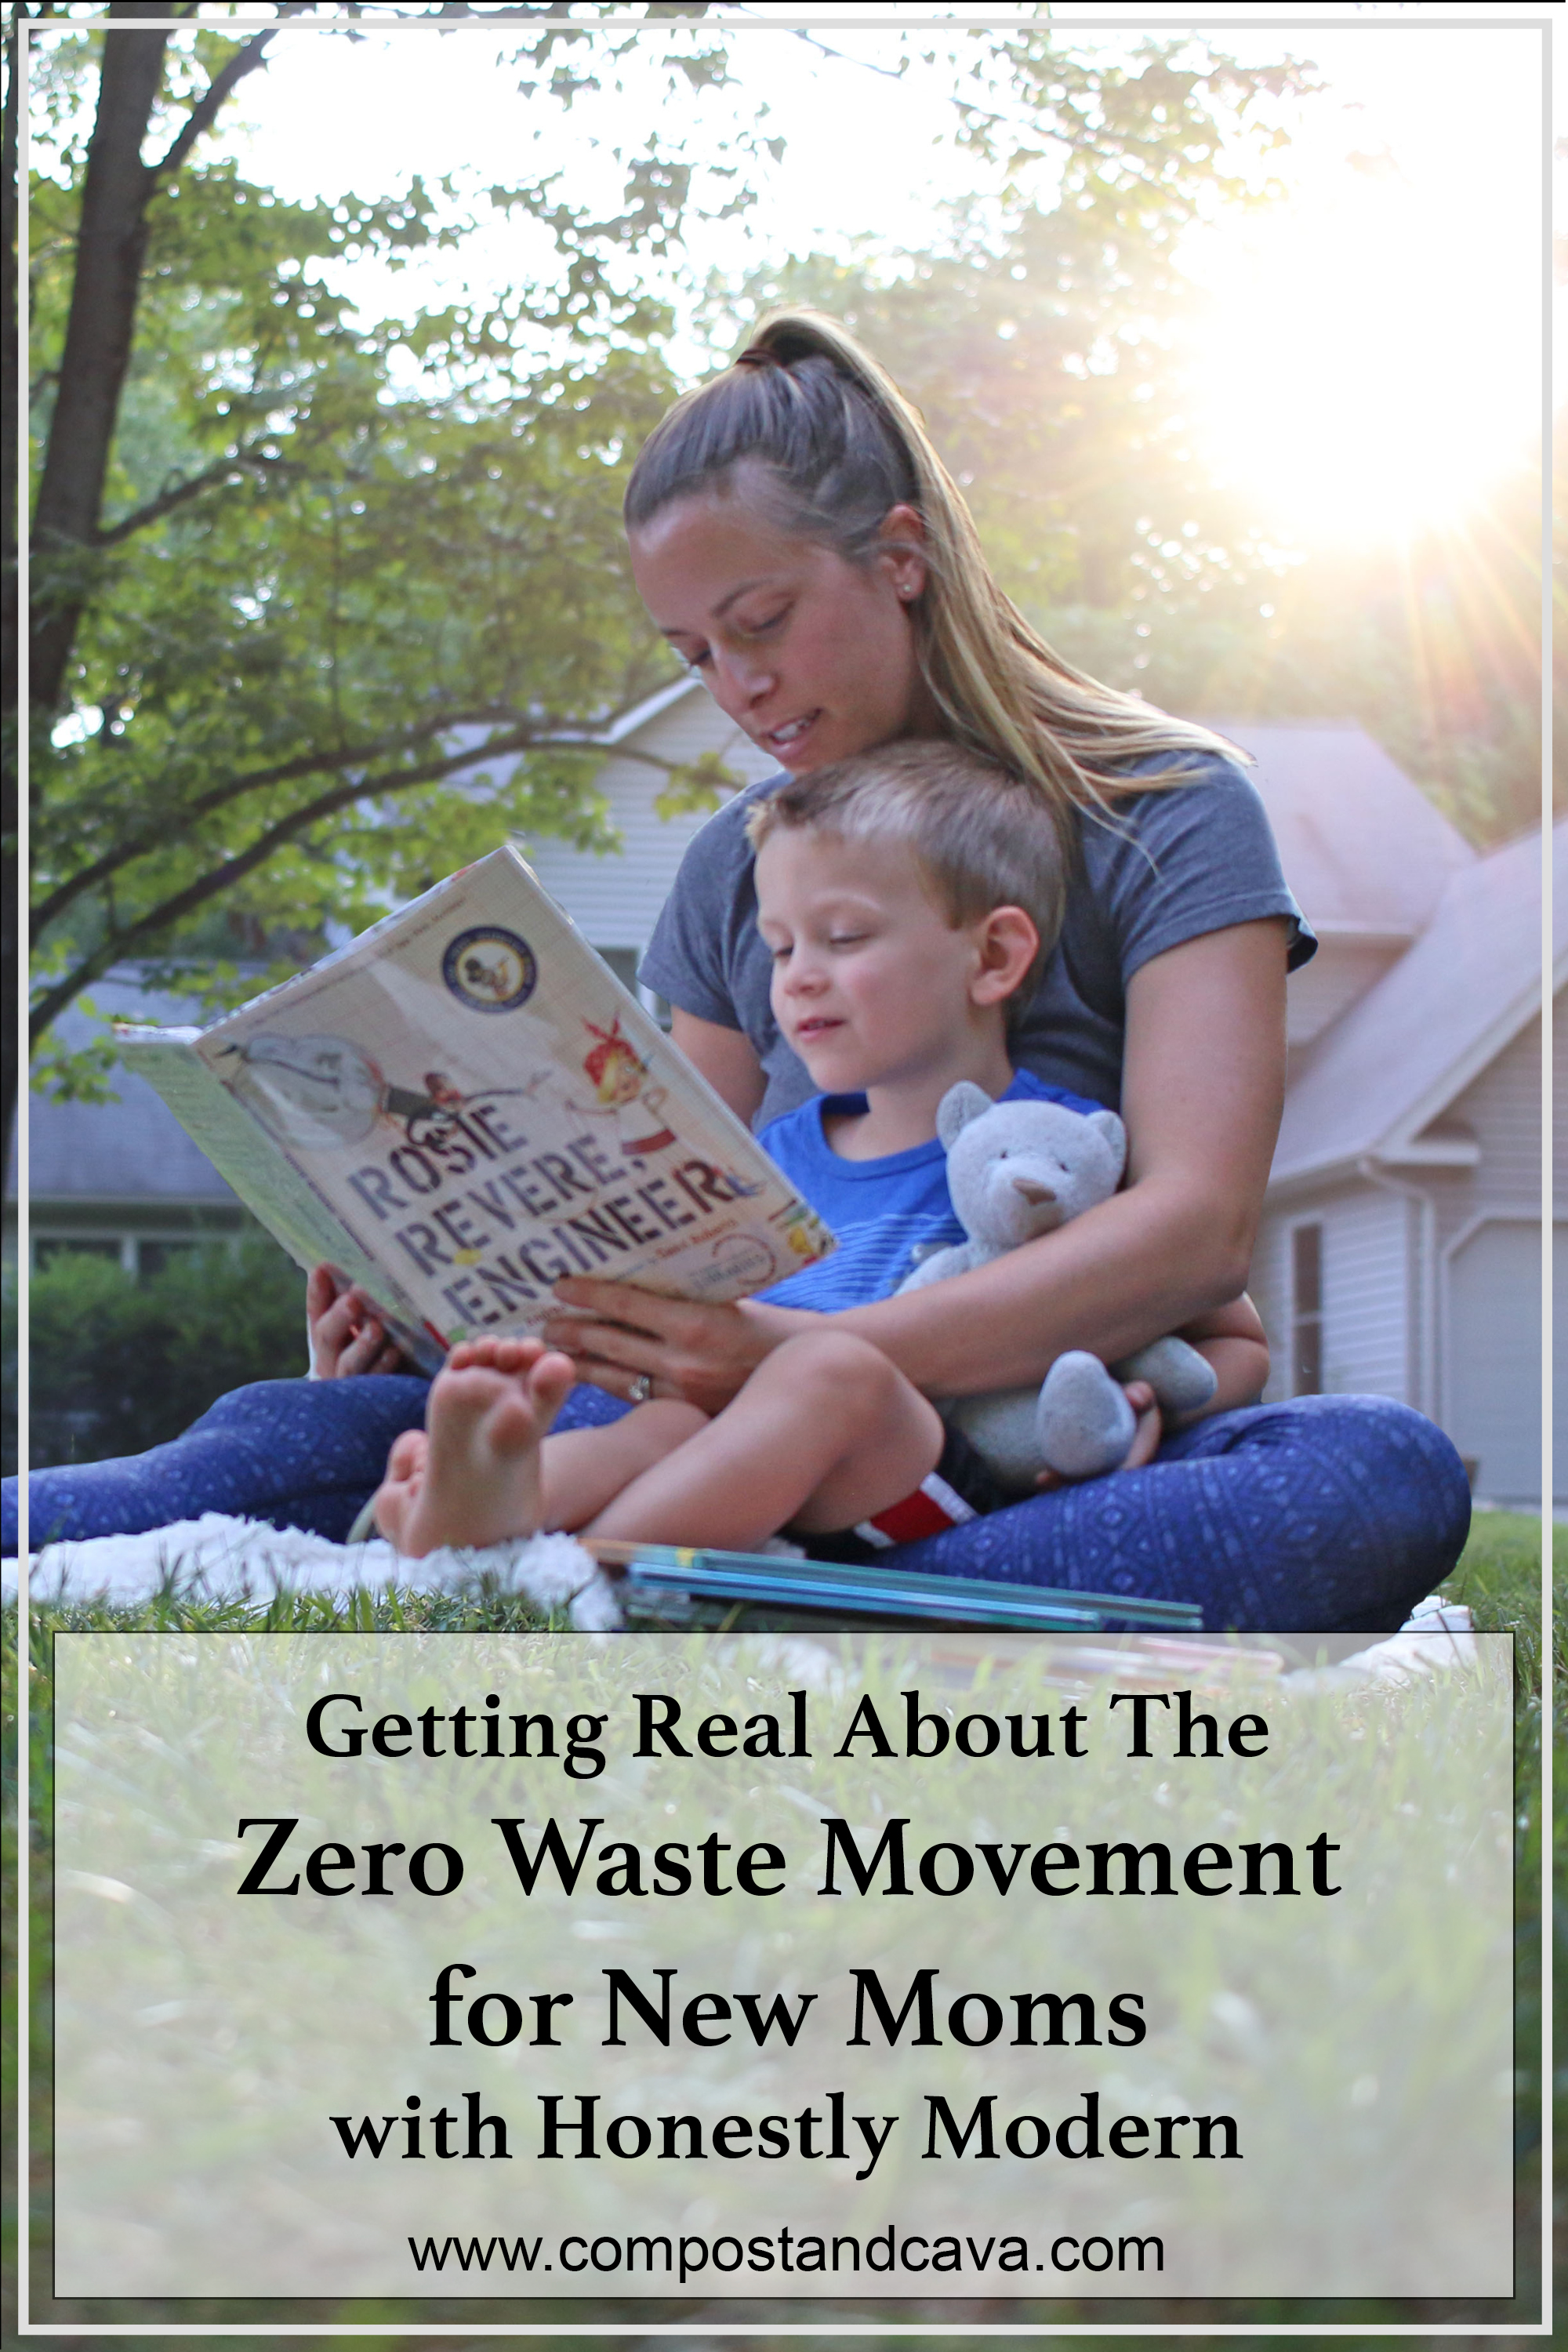 Getting Real About The Zero Waste Movement for New Moms with Honestly Modern